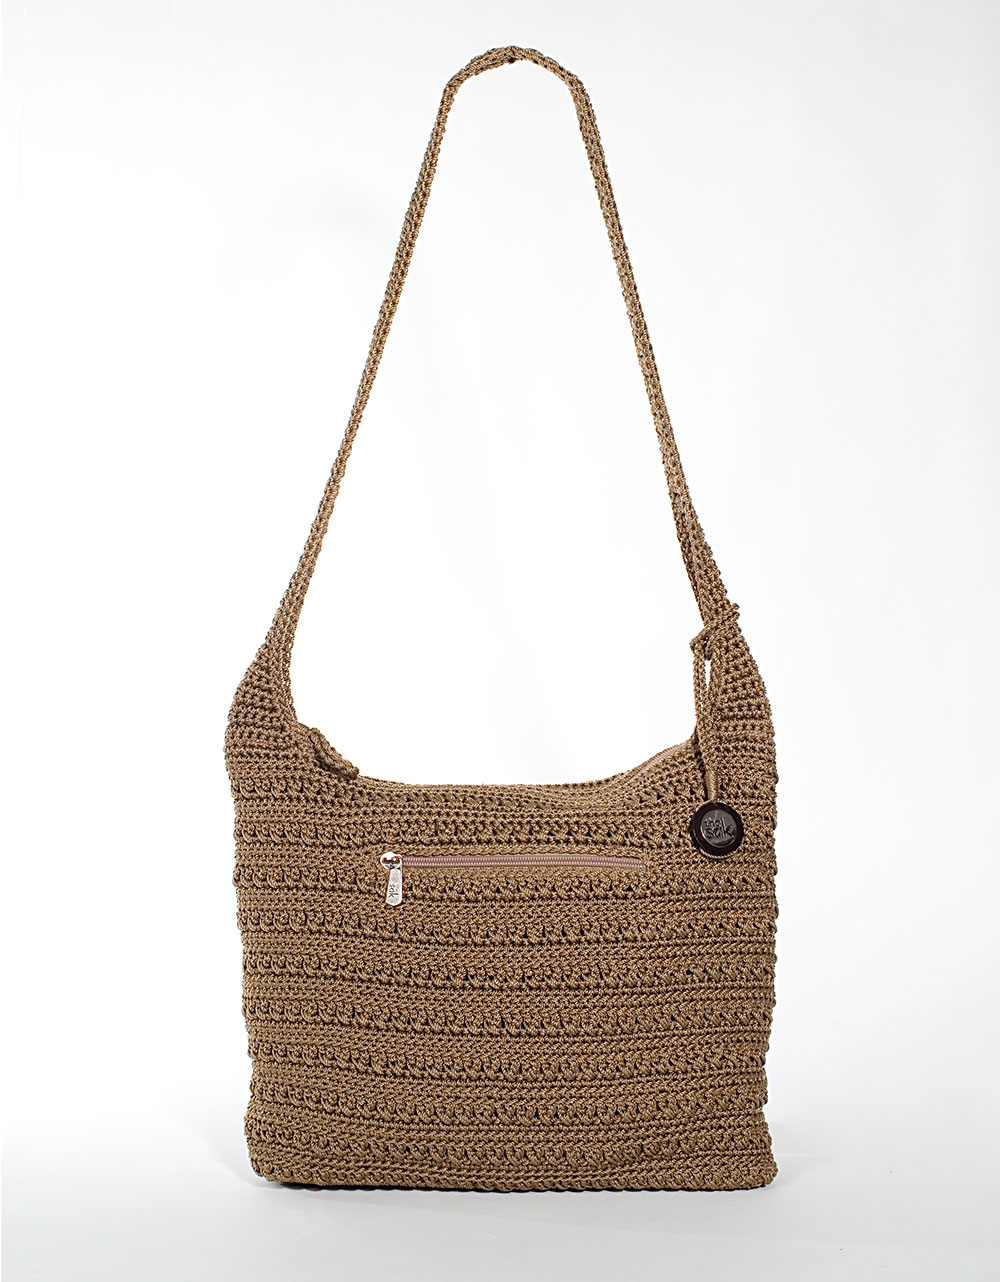 The Sak Bags Crochet : The Sak Marlboro Crochet Shoulder Bag in Brown (taupe) Lyst